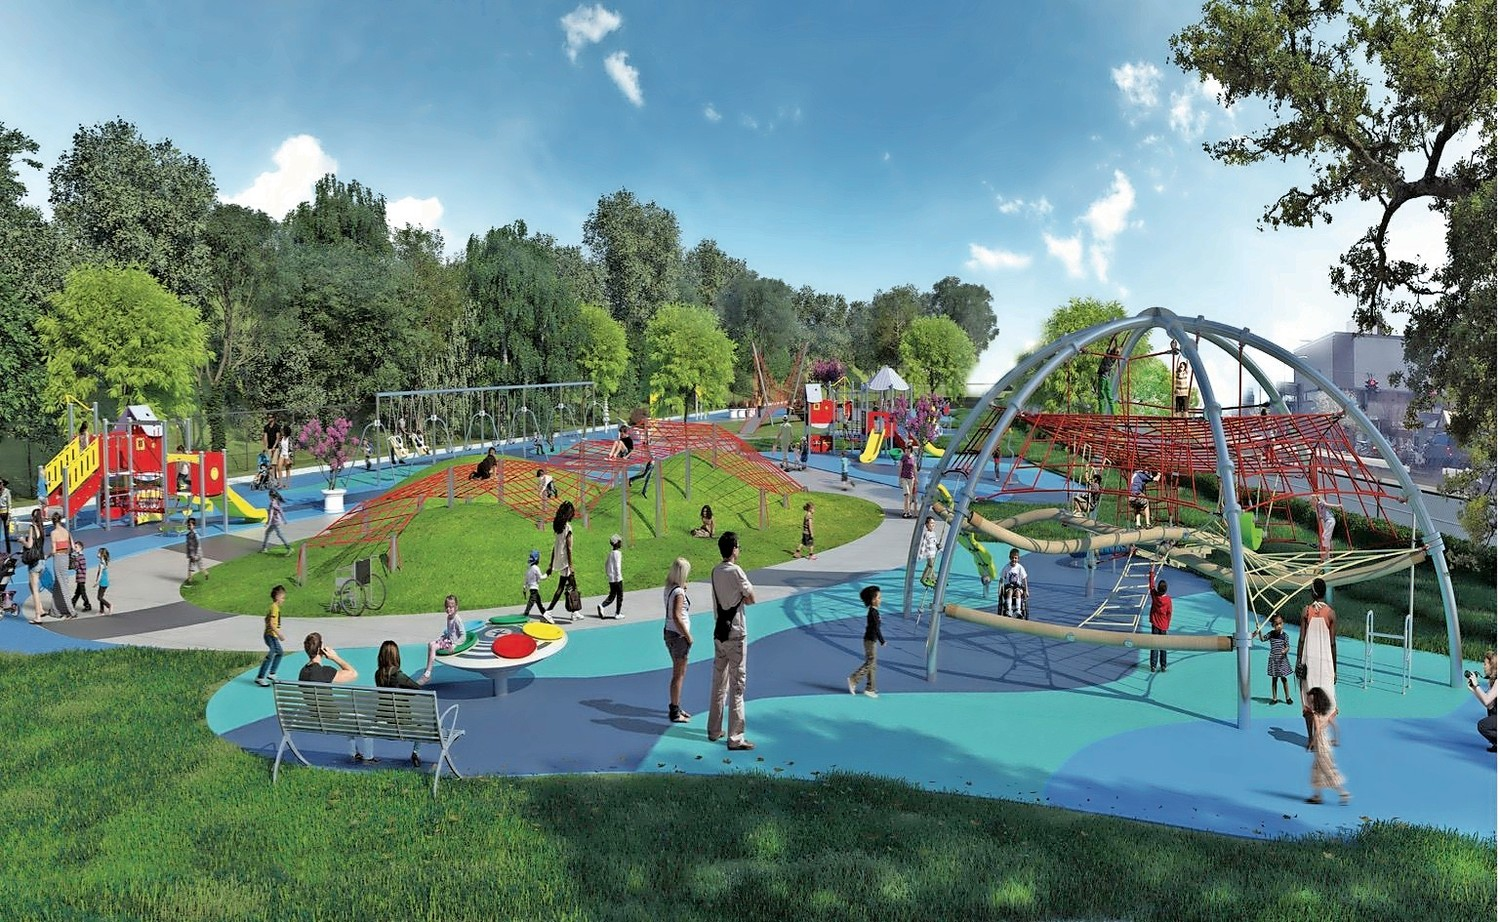 The planned inclusive playground on Hickey Field would feature climbing cargo nets, a suspension bridge, musical equipment and other structures for kids of all ages to enjoy.